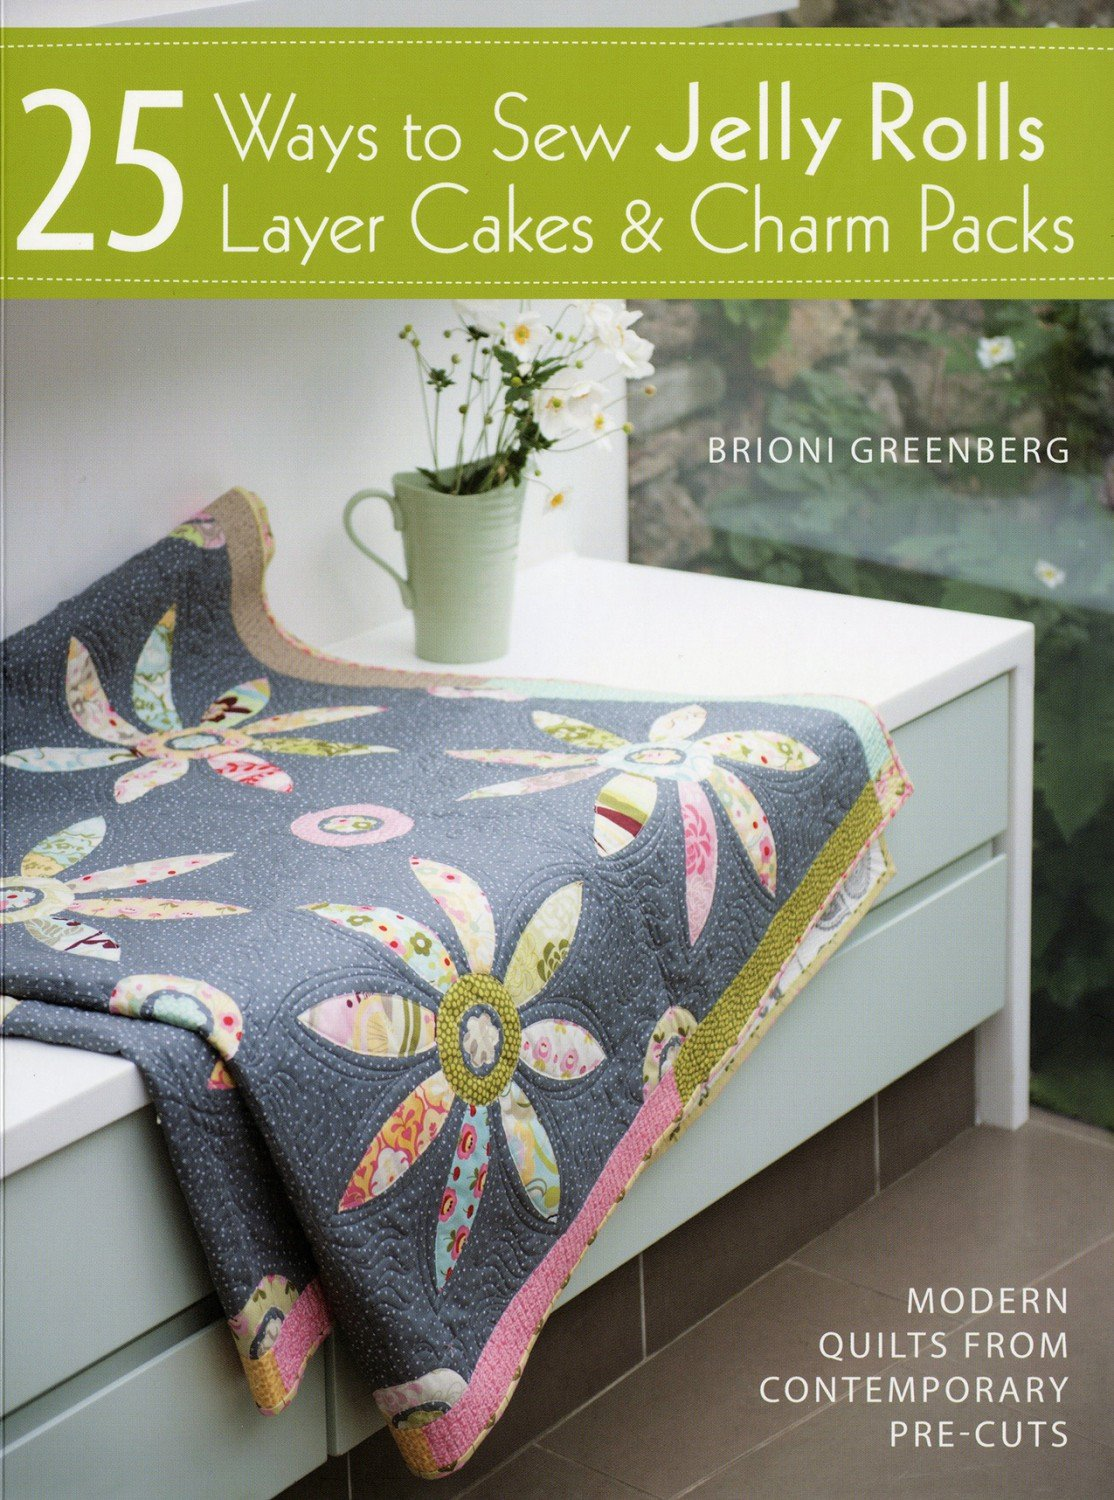 25 Ways to Sew Jelly Rolls. Layer Cakes and Charms Book